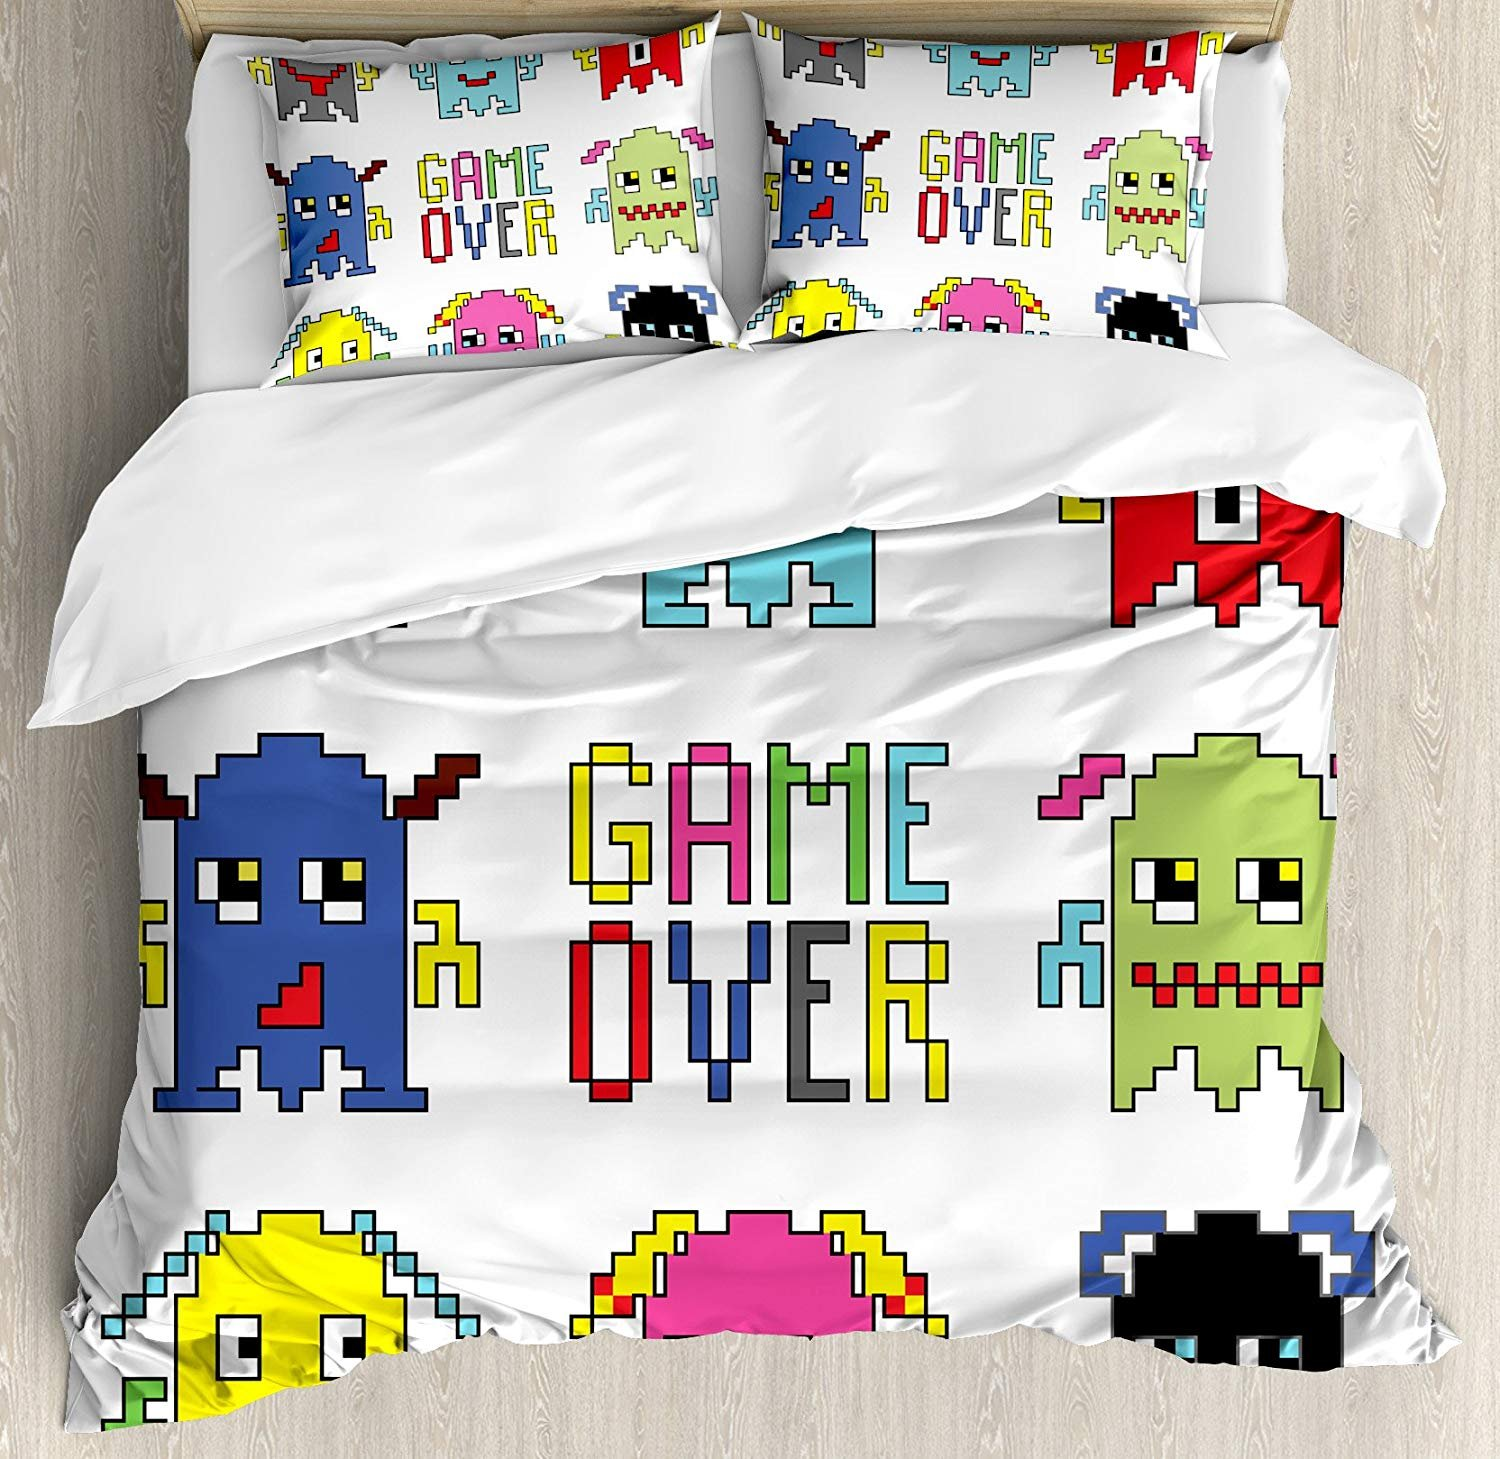 Twin Size 90s 3 PCS Duvet Cover Set, Pixel Robot Emoticons with Game Over Sign Inspired by 90's Computer Games Fun Artprint, Bedding Set Quilt Bedspread for Children/Teens/Adults/Kids, Yellow Red